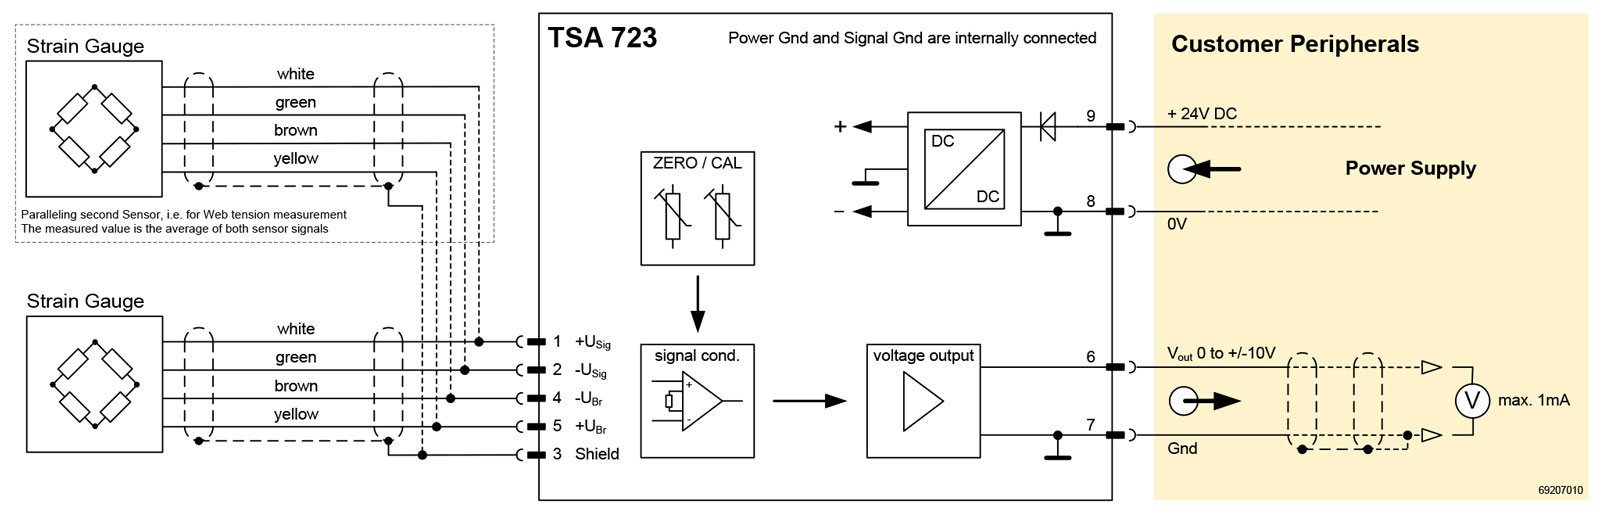 TSA723 Block Diagram - Voltage Output 0 to 10V